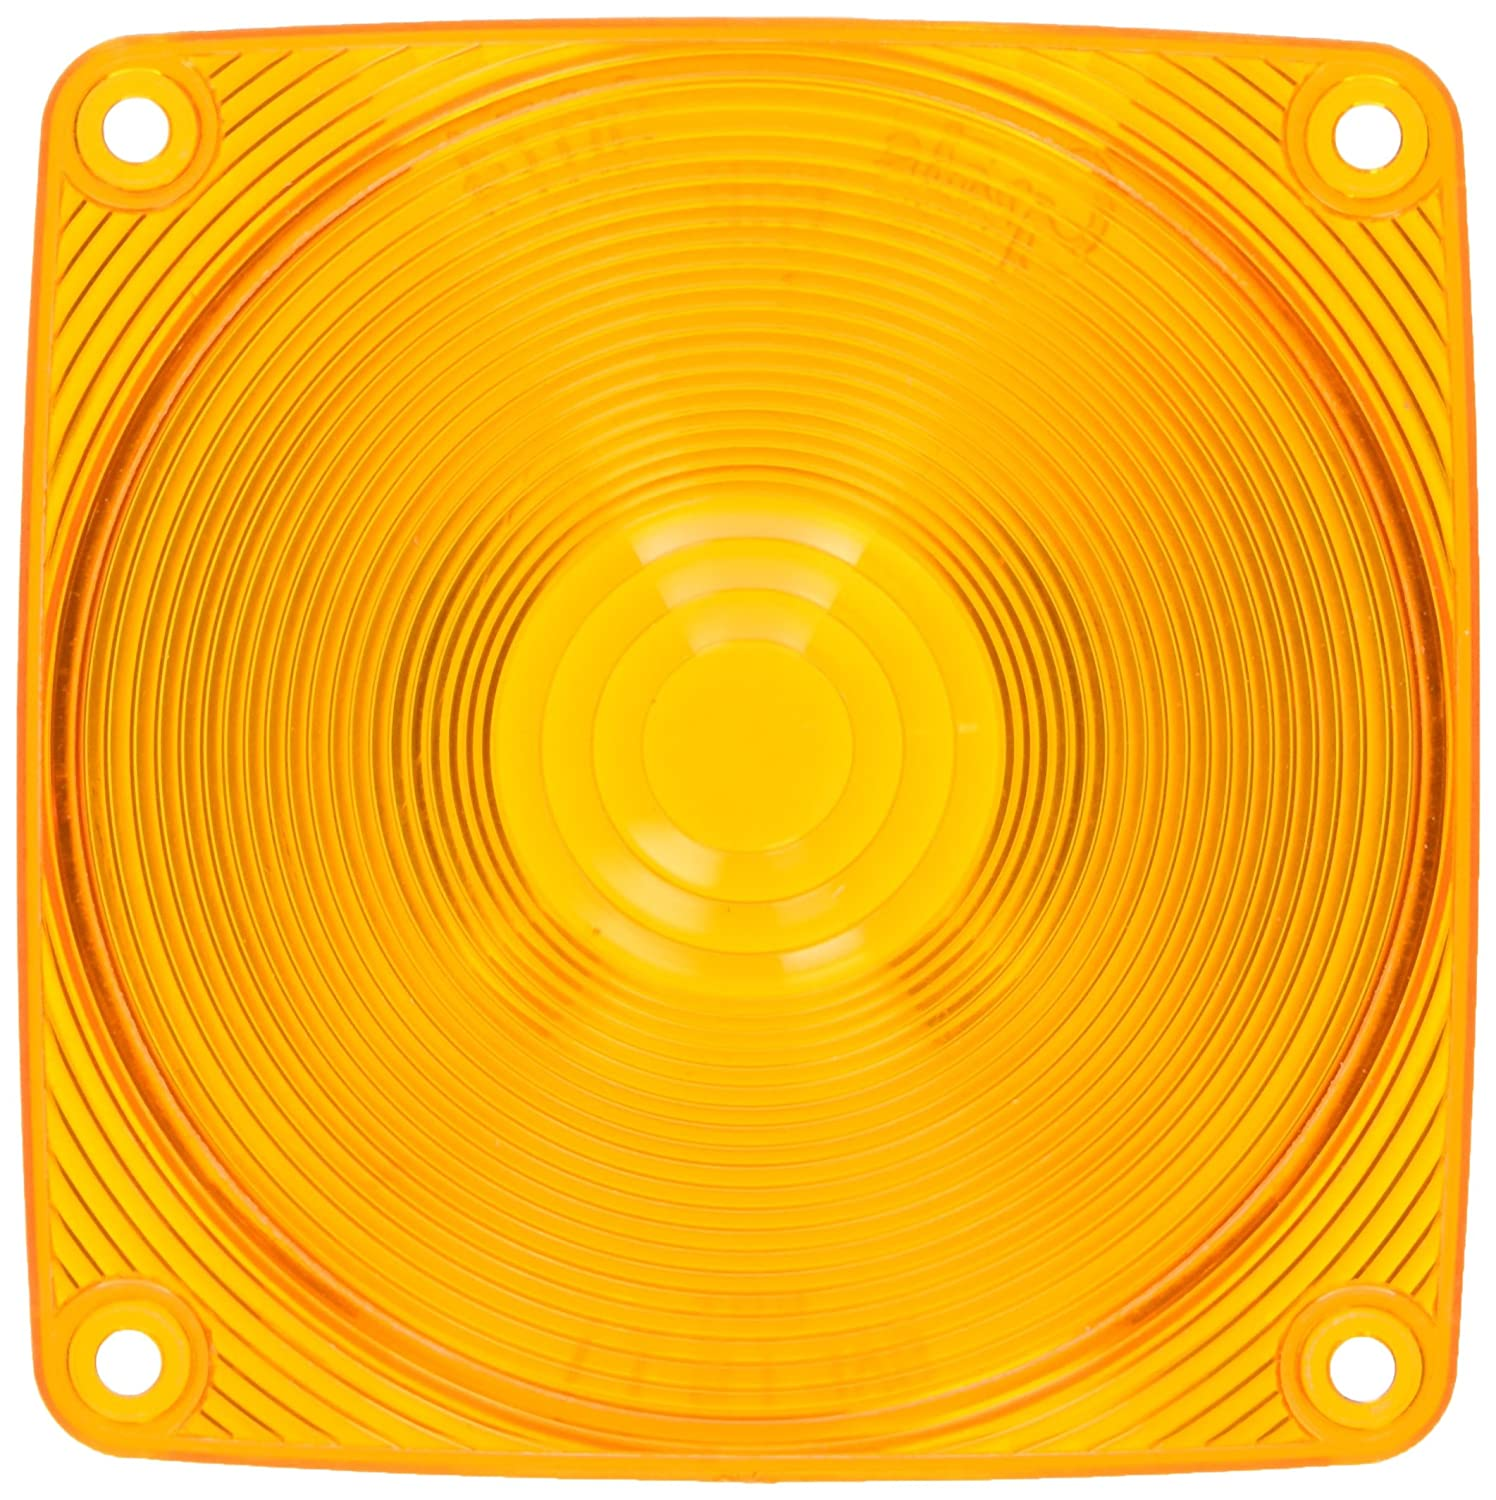 Two Stud Lens Grote 90743 Yellow Stop Tail Turn Replacement Lenses